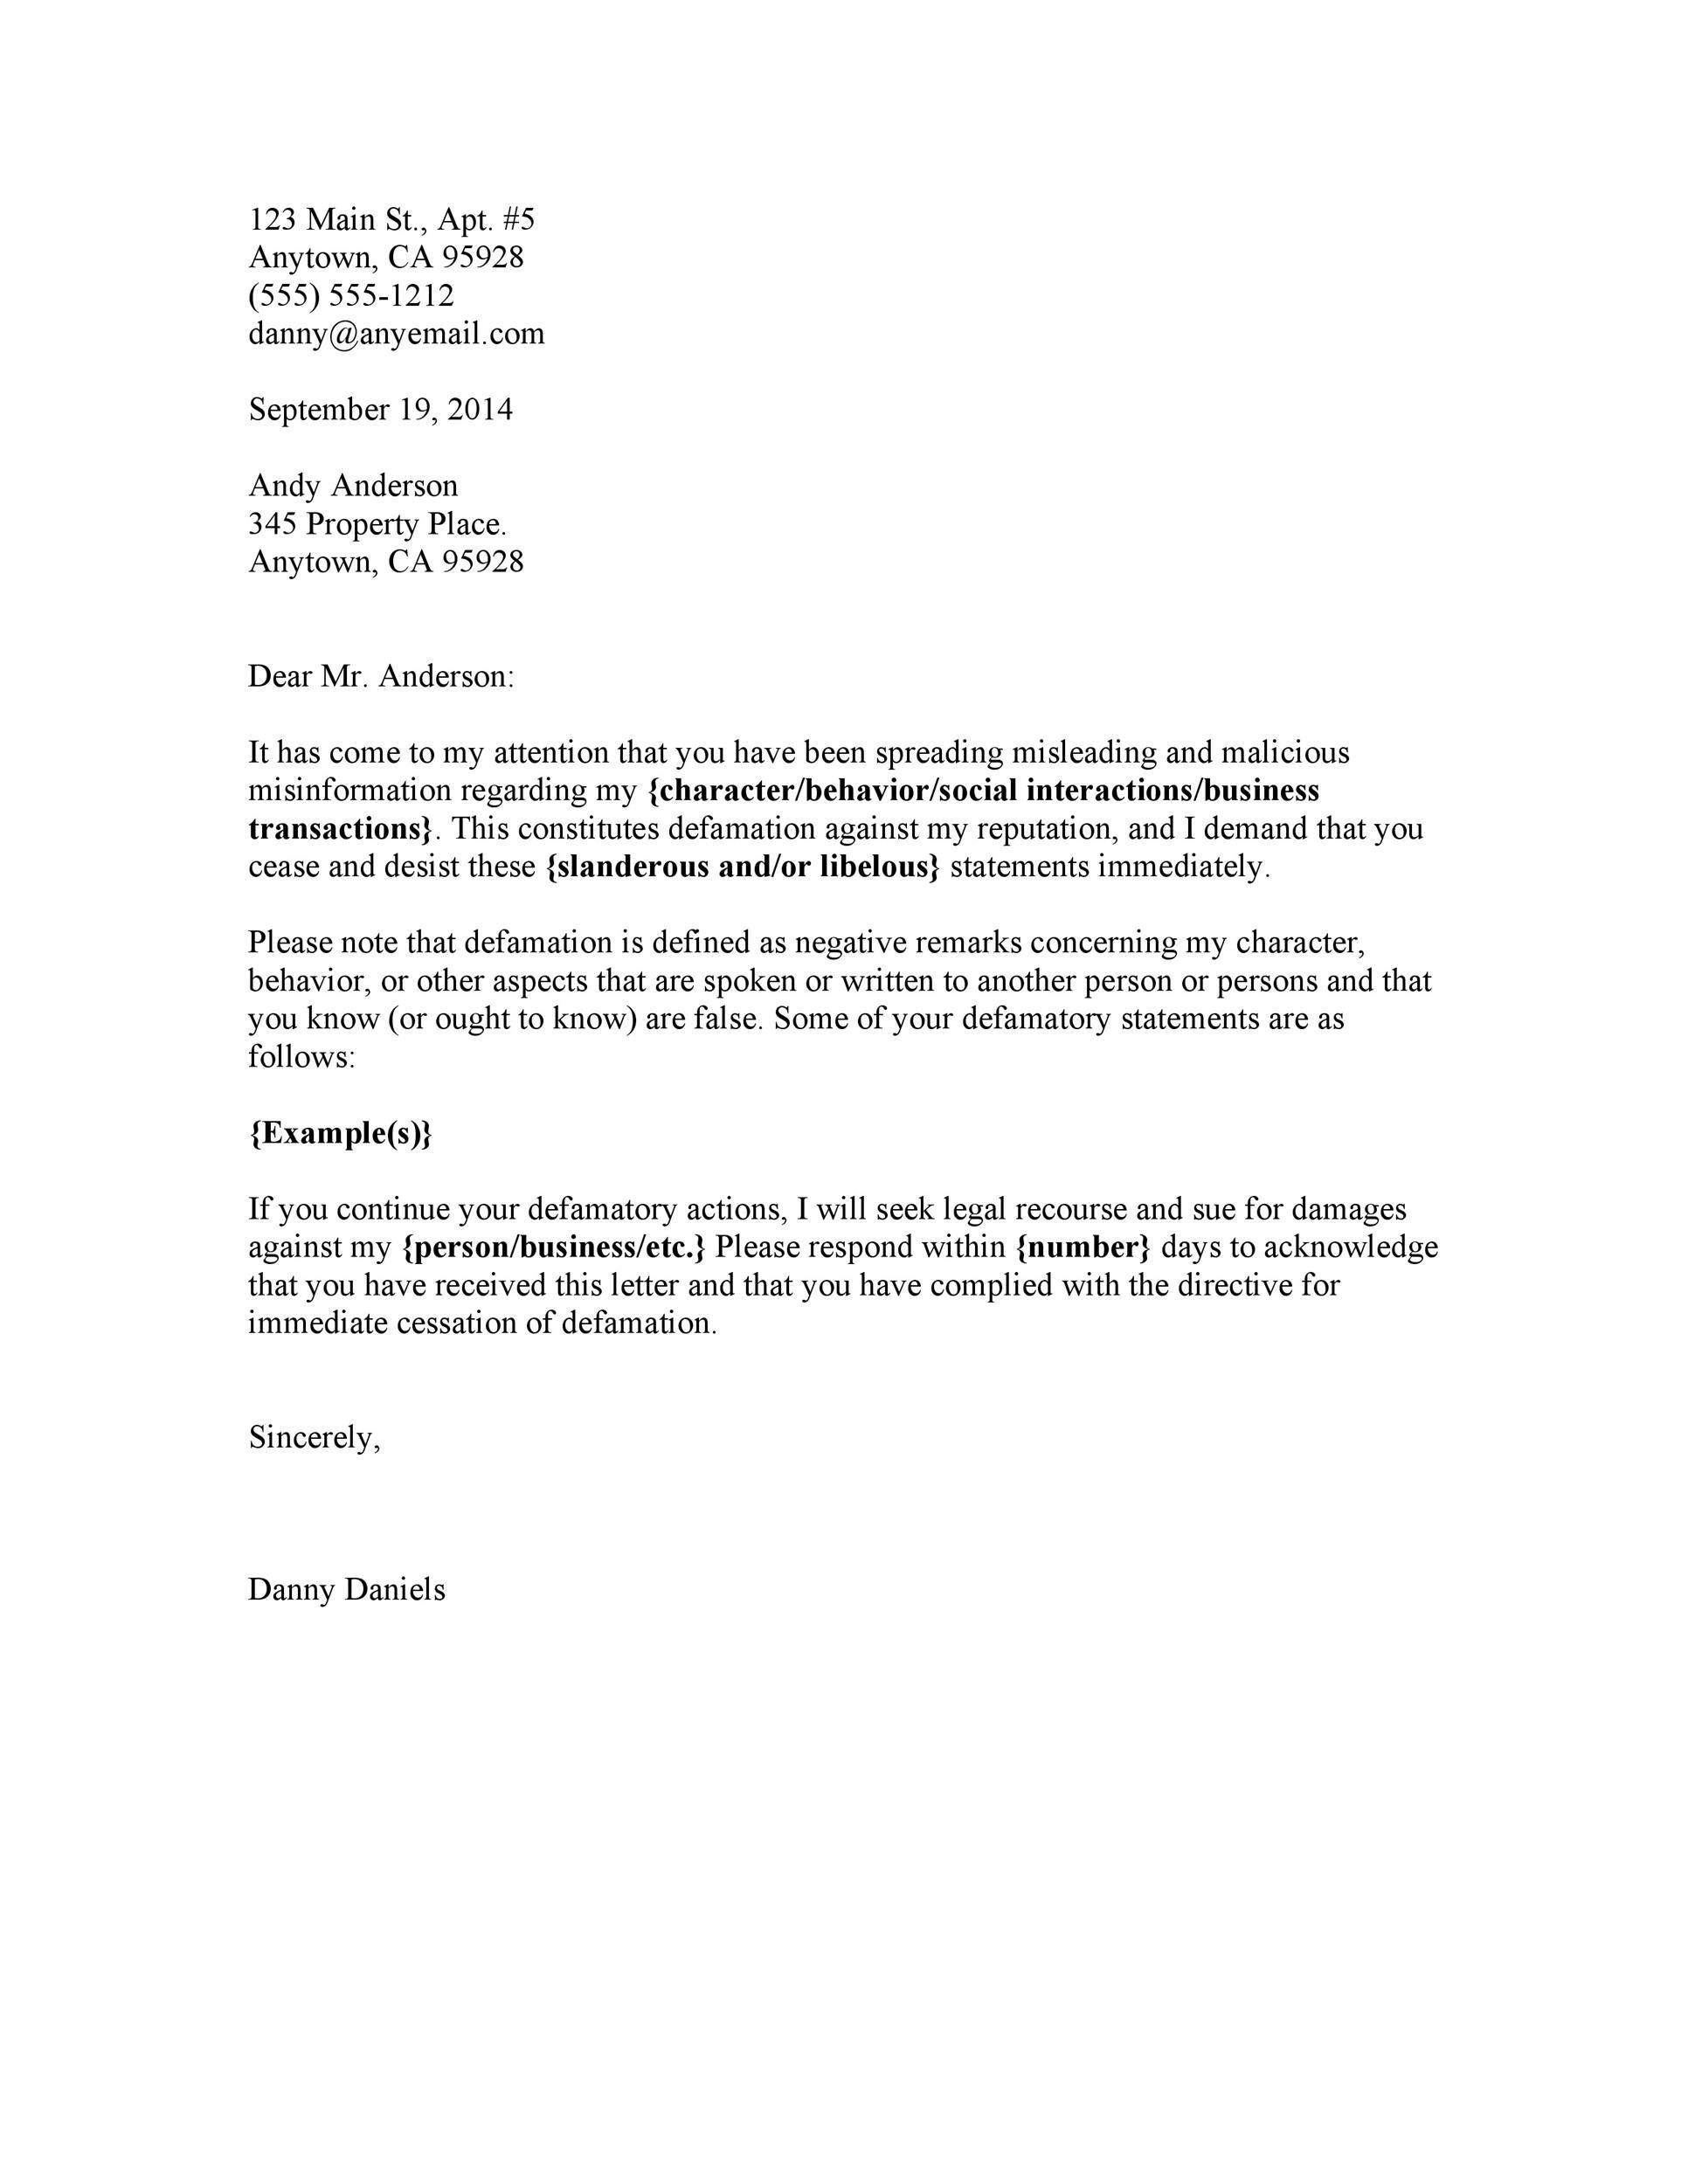 Property Damage Letter Template | Letter Template 2017